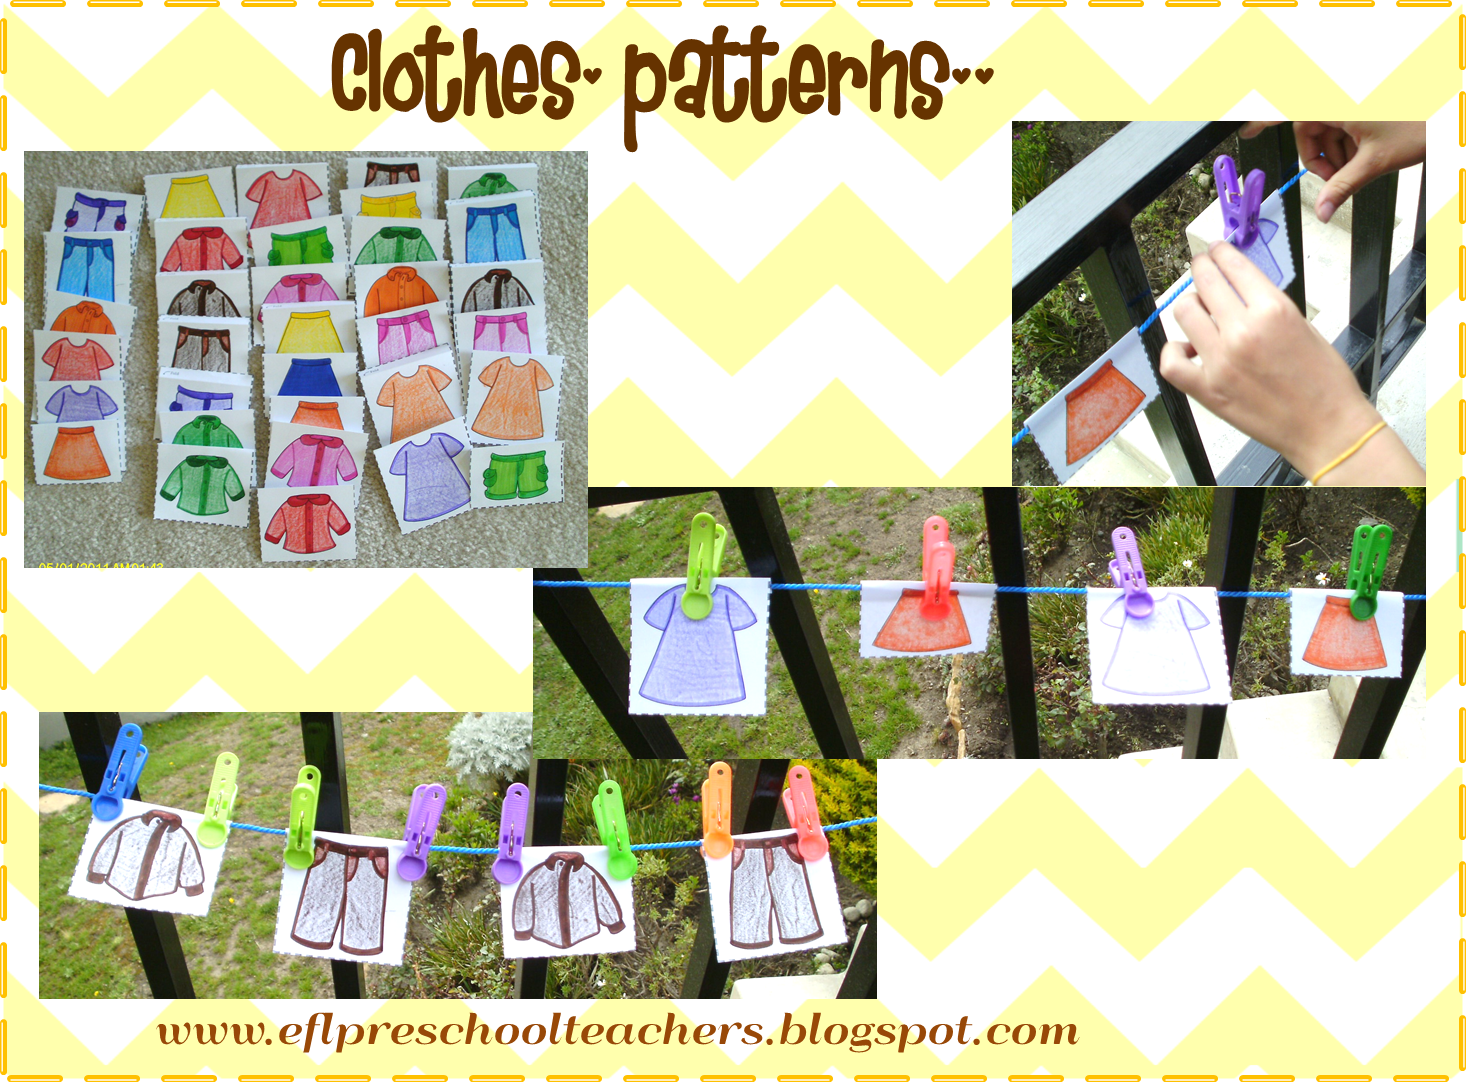 Esl Efl Preschool Teachers Clothes Theme Hang The Clothesline In Class Distribute The Coloring